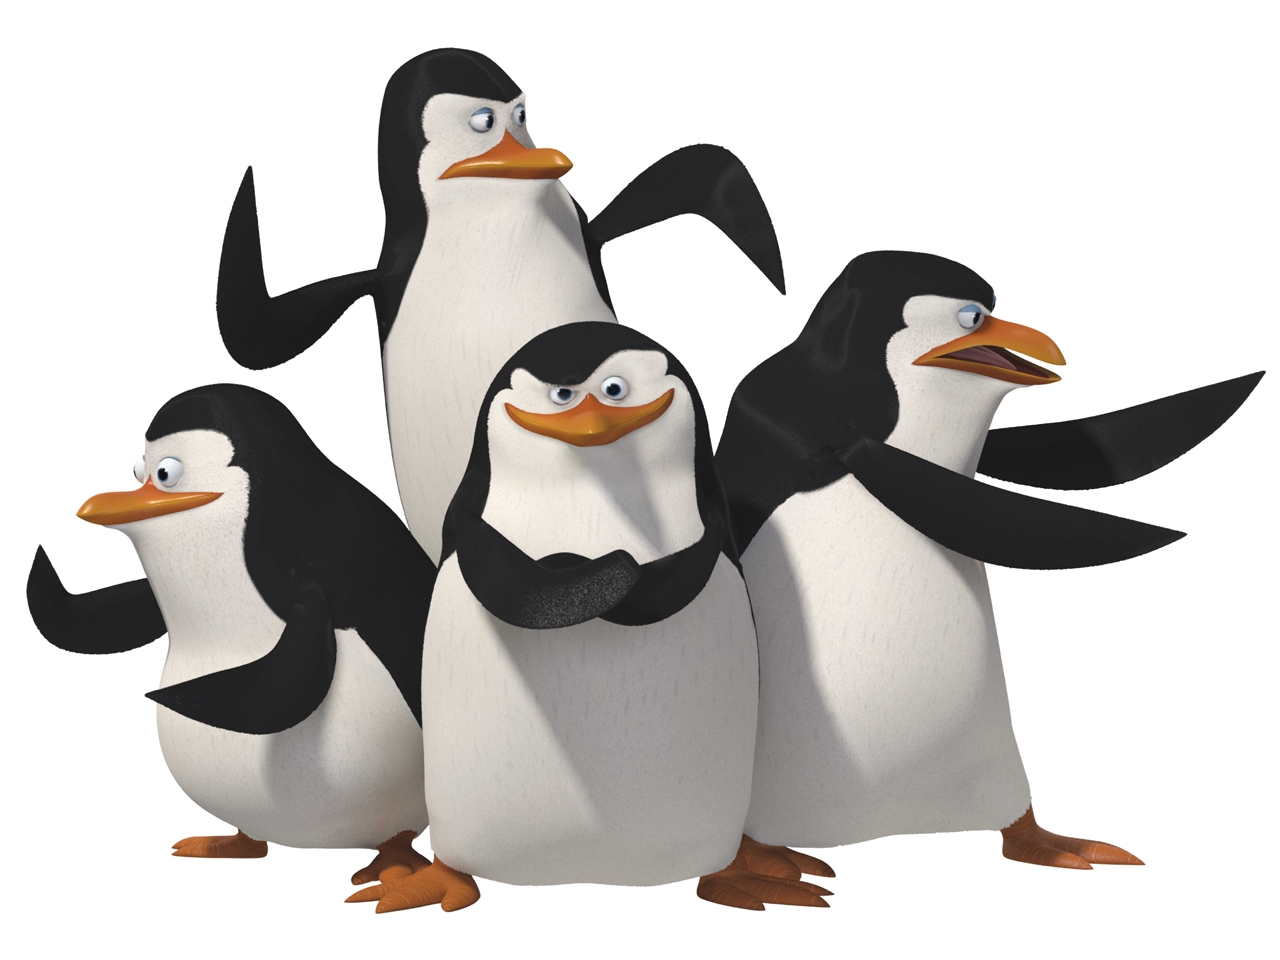 madagascardreamworkspenguin5g1.jpg